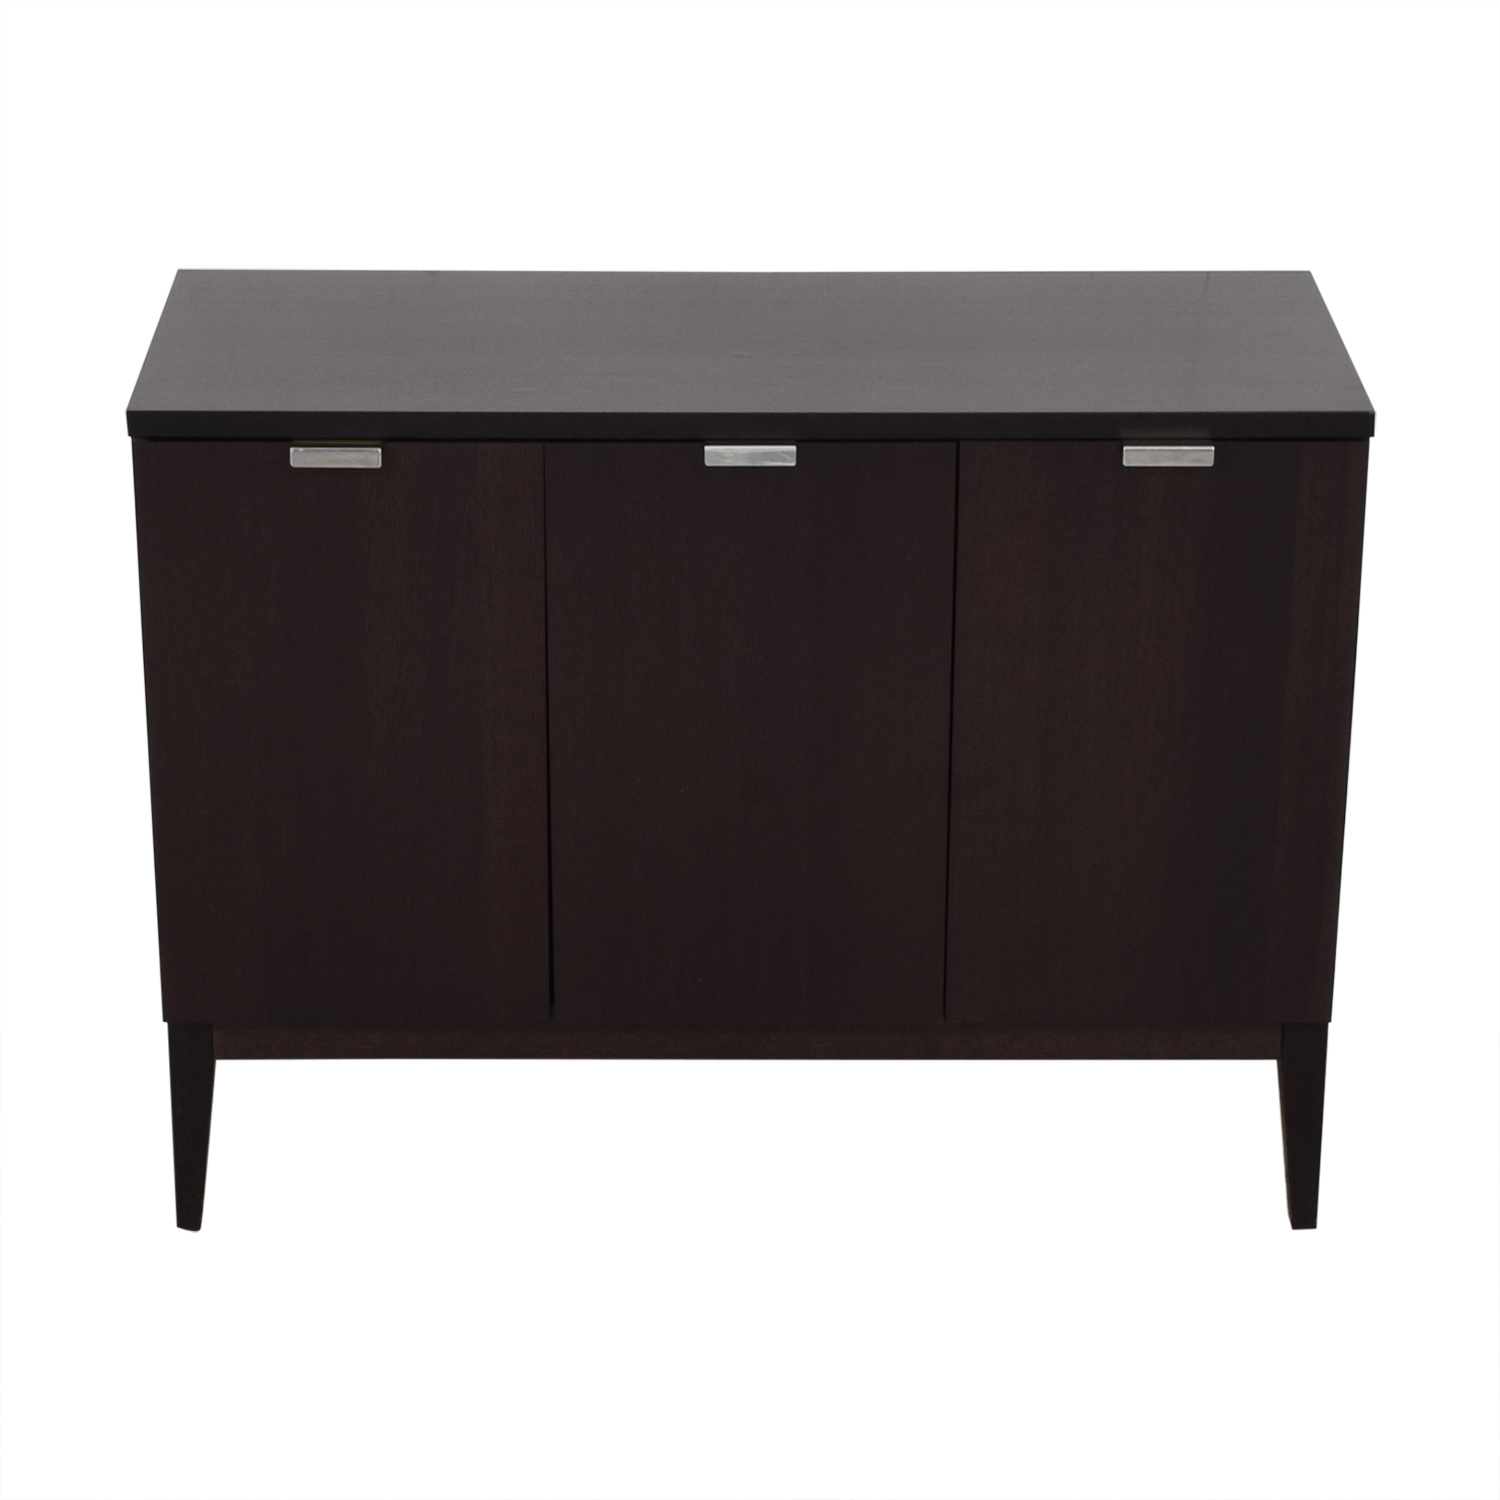 West Elm West Elm Buffet Storage